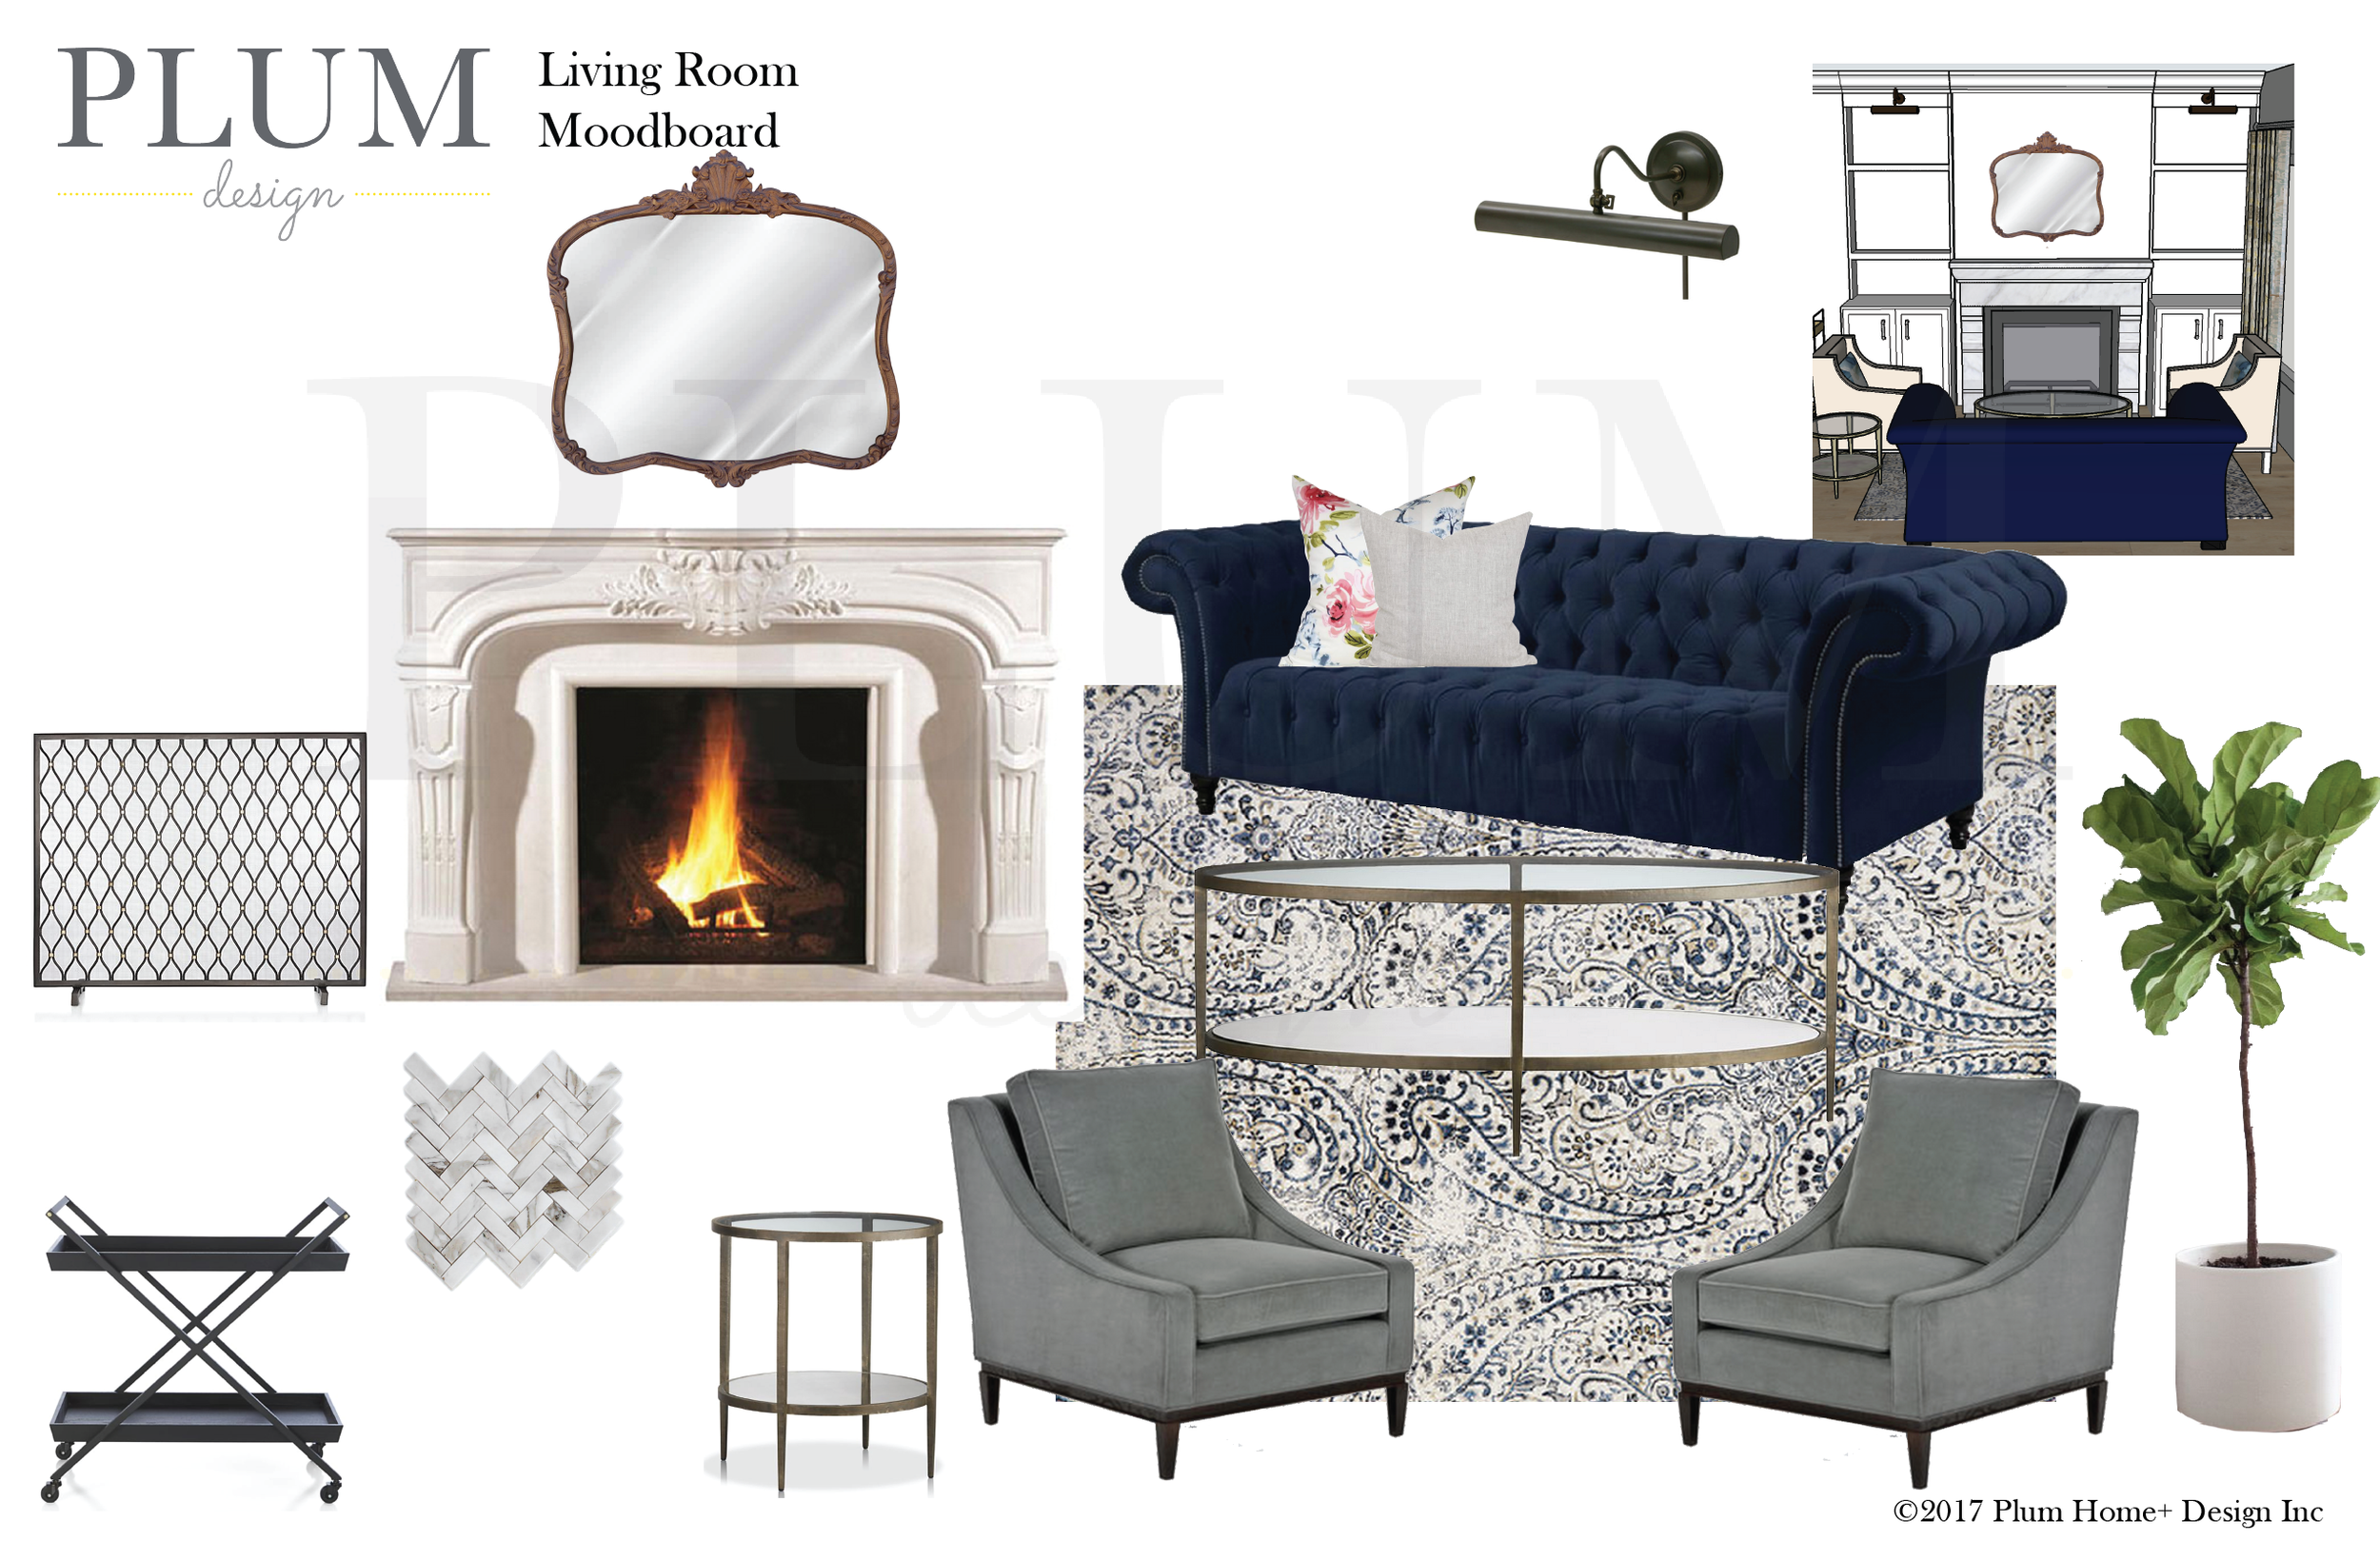 We were working with our clients existing sofa which was a pretty substantial size and we were working around two entryways into the space so the layout was tricky. Ultimately we wanted to create a beautiful fireplace as the focal point of the room. We are suggesting a show stopper marble mantle.